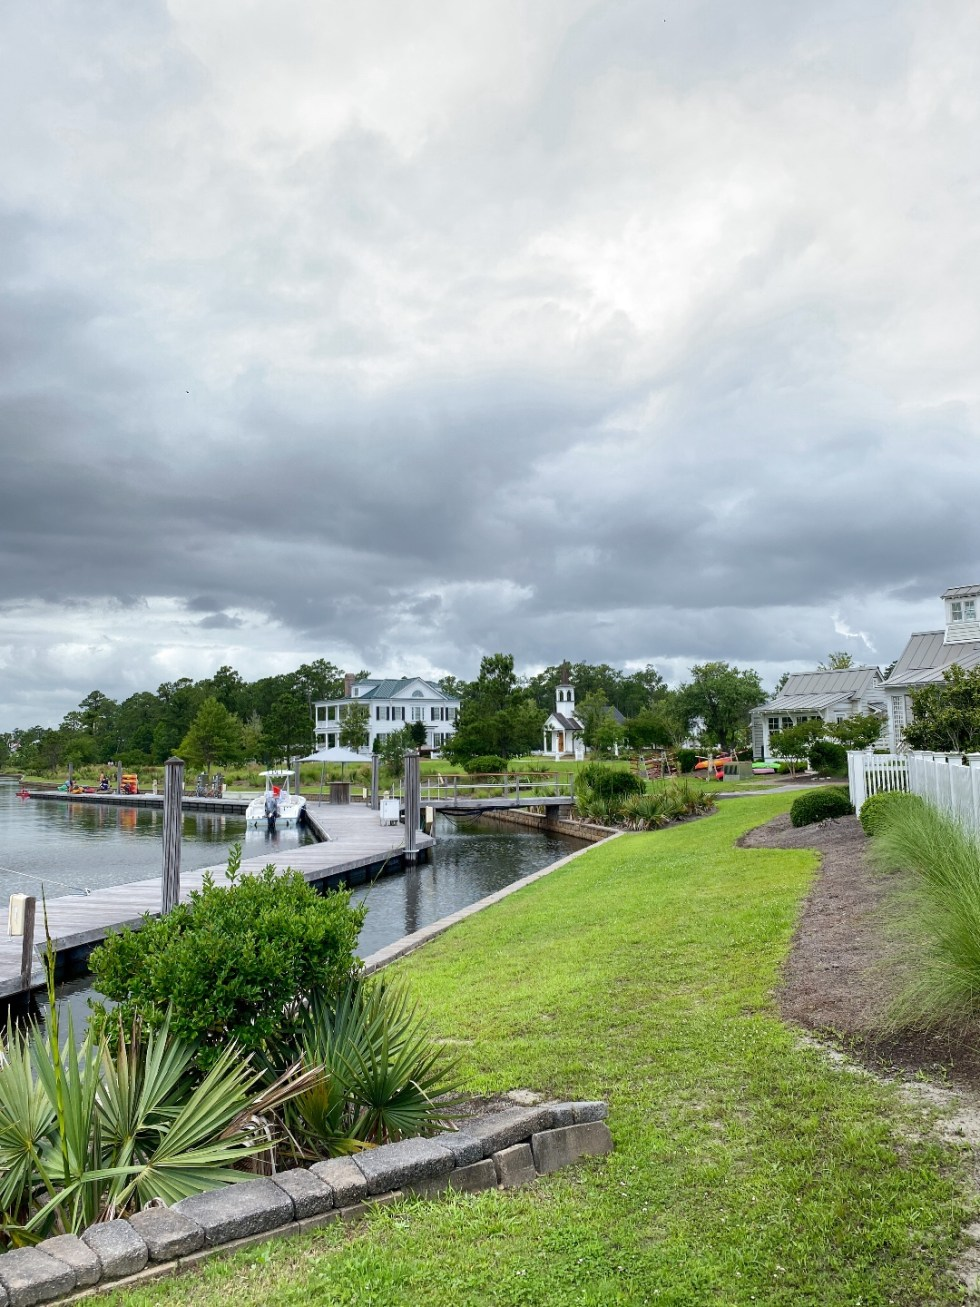 What to Do in Oriental, NC - I'm Fixin' To - @imfixintoblog | Things to do in Oriental NC by popular NC travel blog, I'm Fixin' To: image of Harbourside cottages.